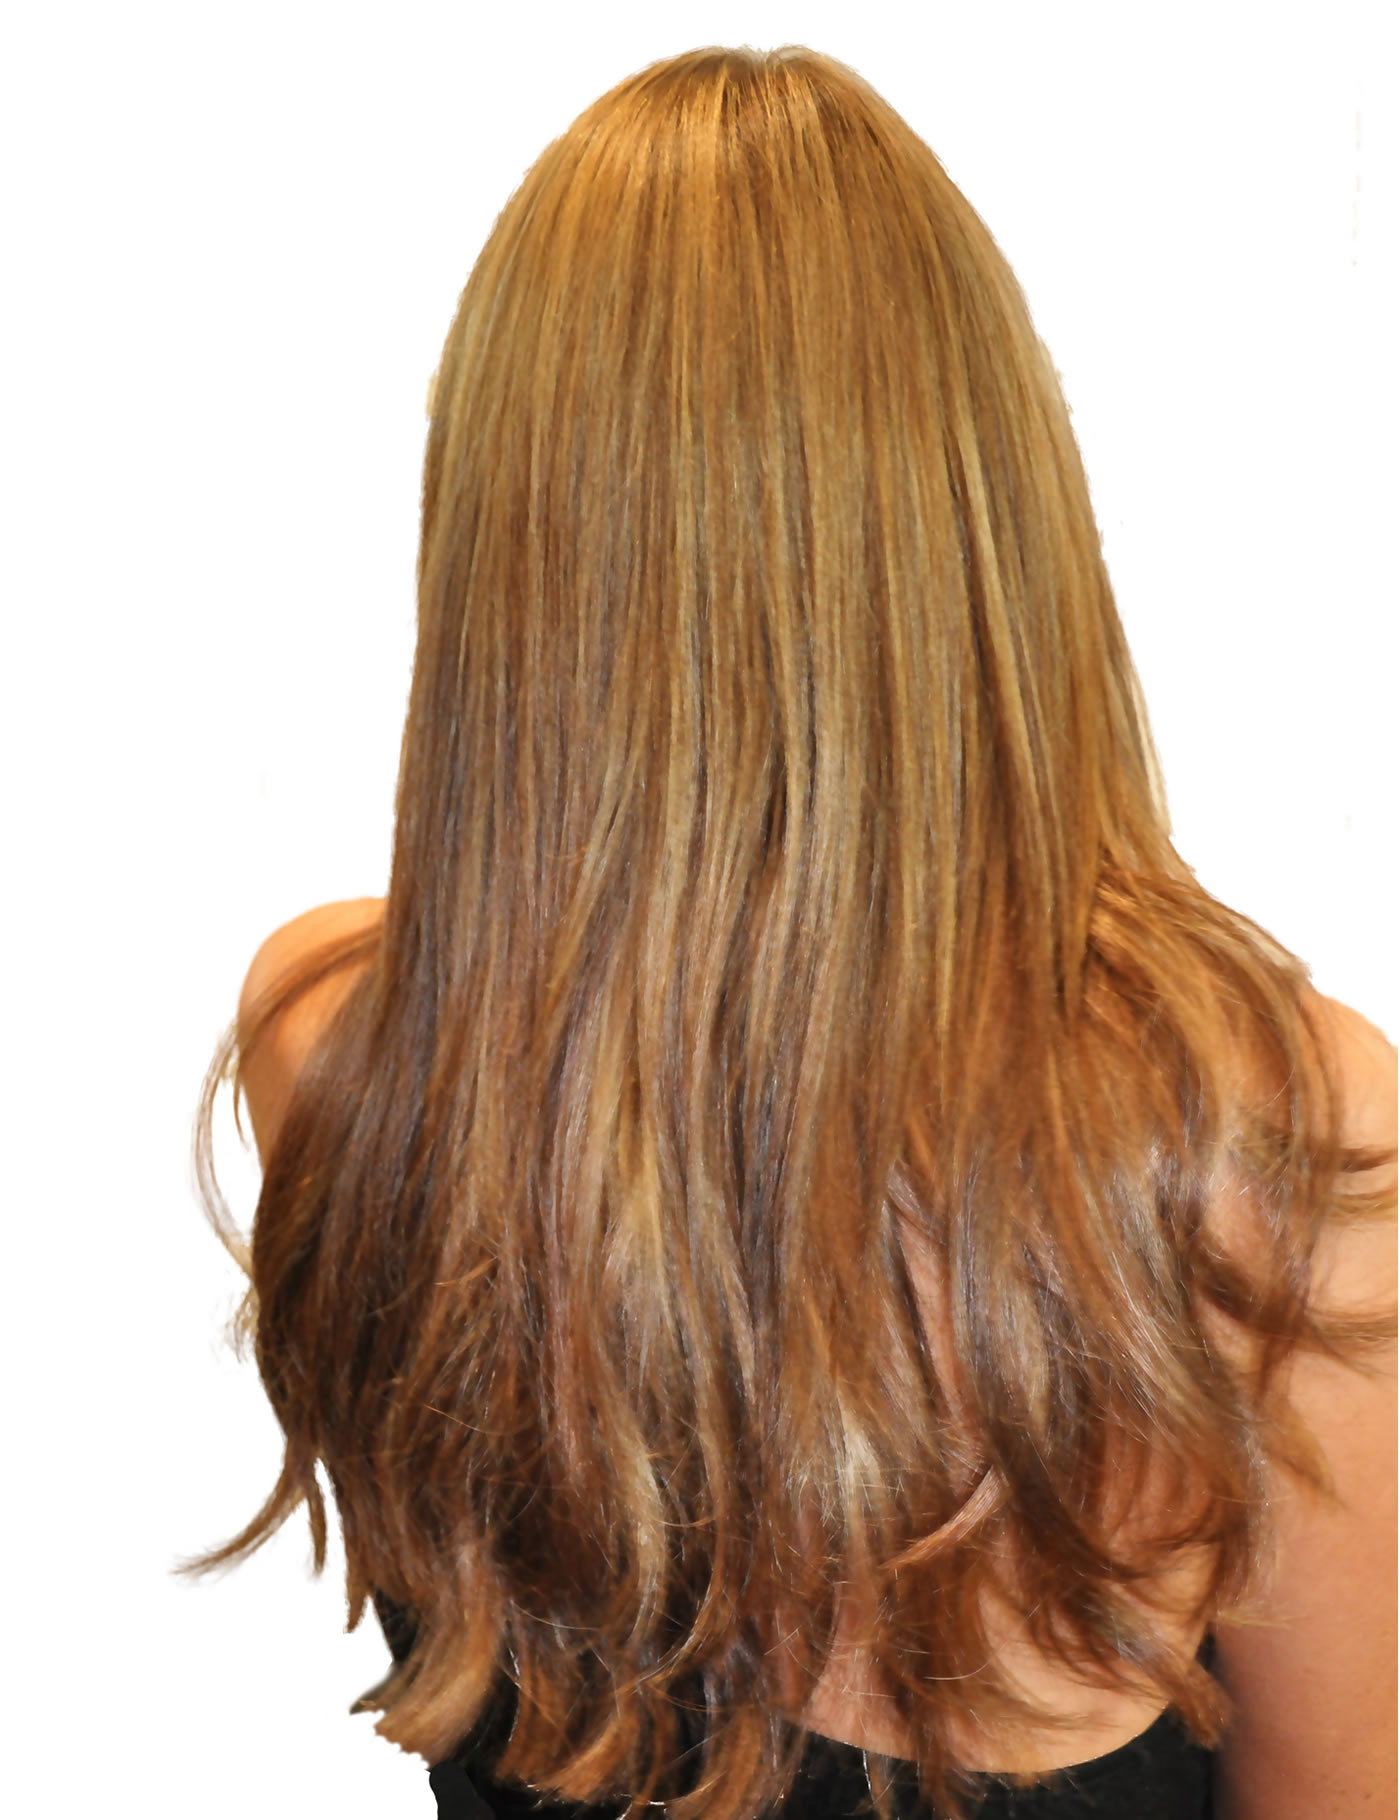 'Hair Extensions Tried and Tested' - After